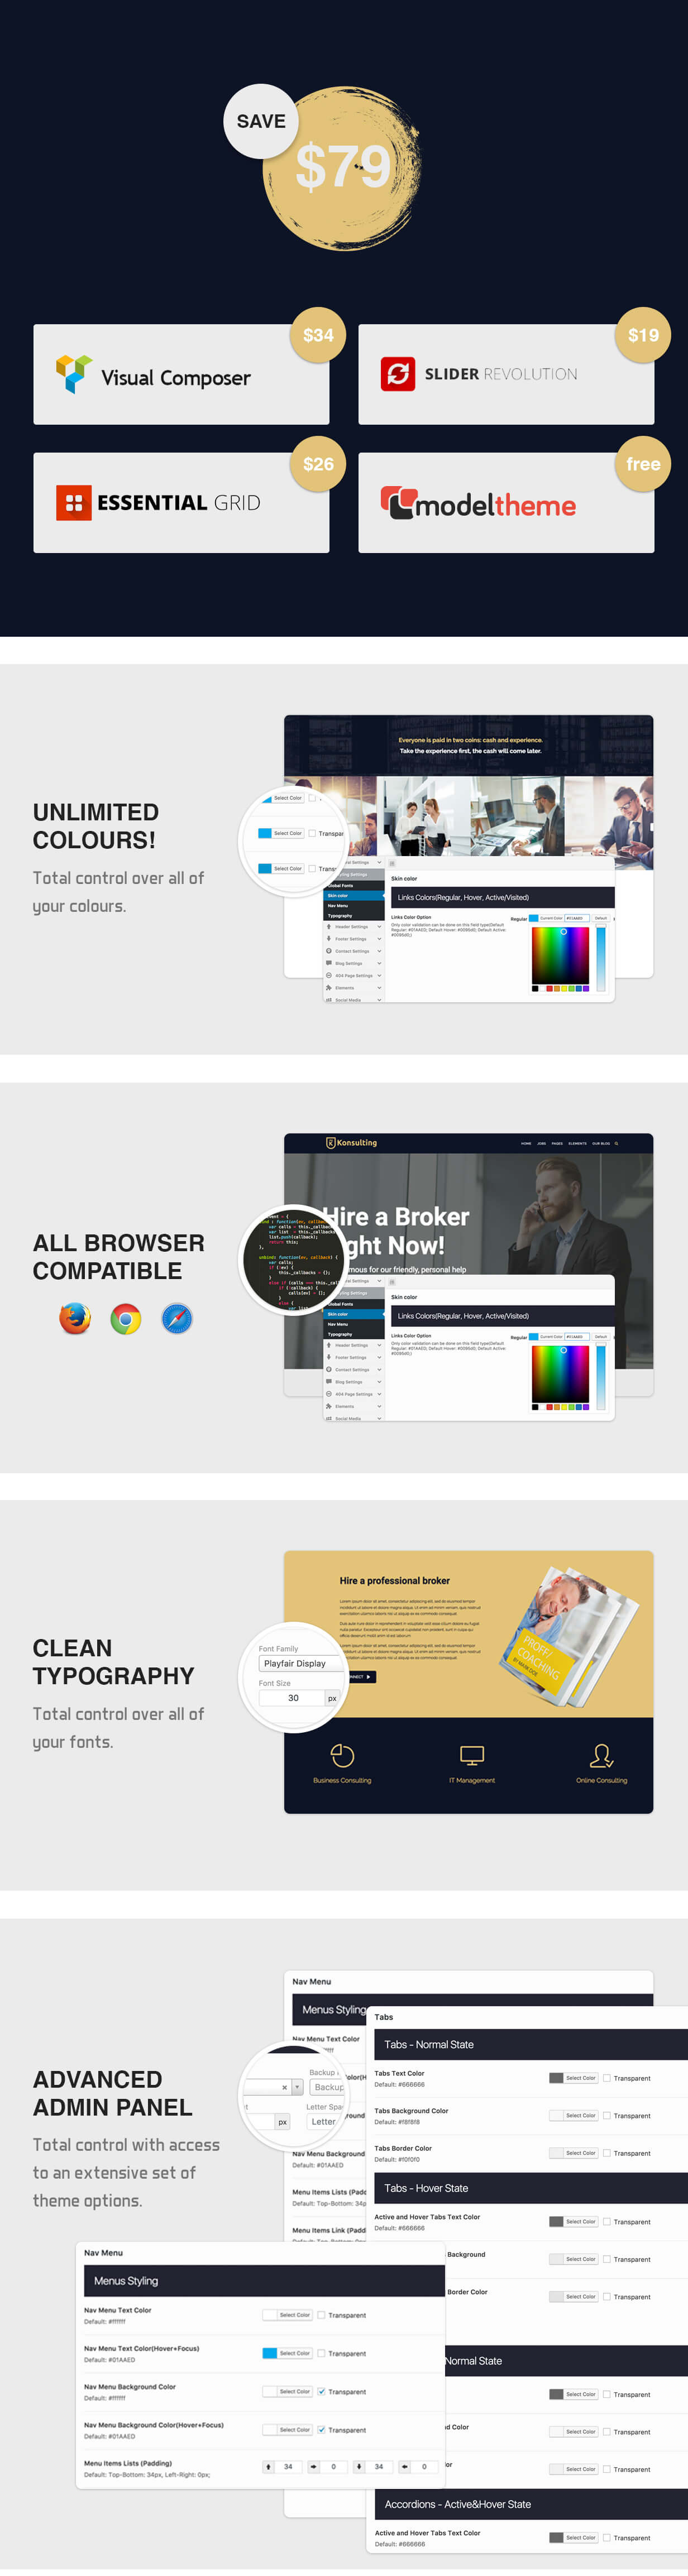 Konsulting - Consulting & Bitcoin WordPress Theme - 5